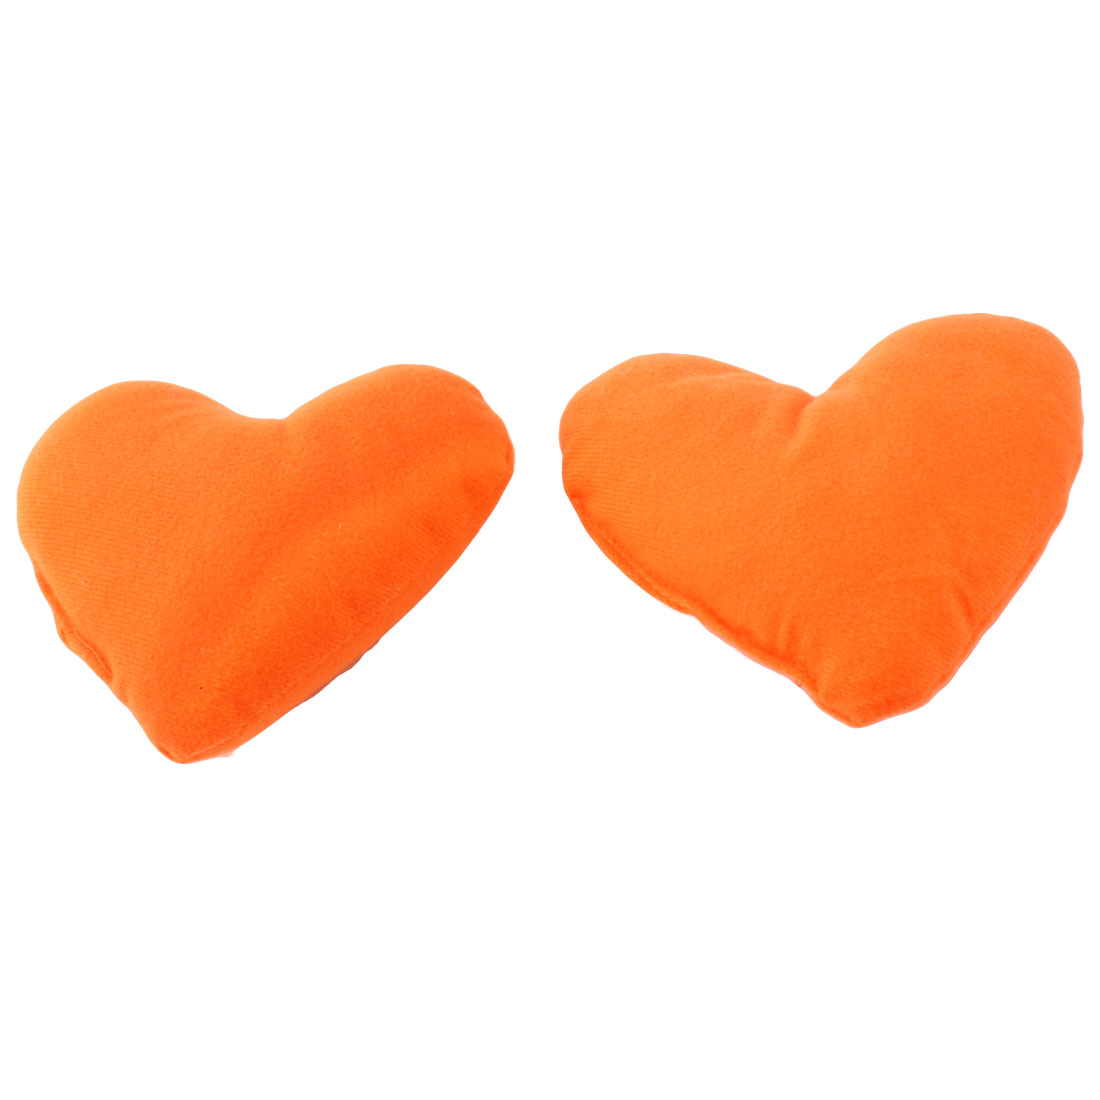 Doggie Puppy Heart Shaped Cute Neck Pet Pillow Headrest Pad Toy Orange 2 Pcs